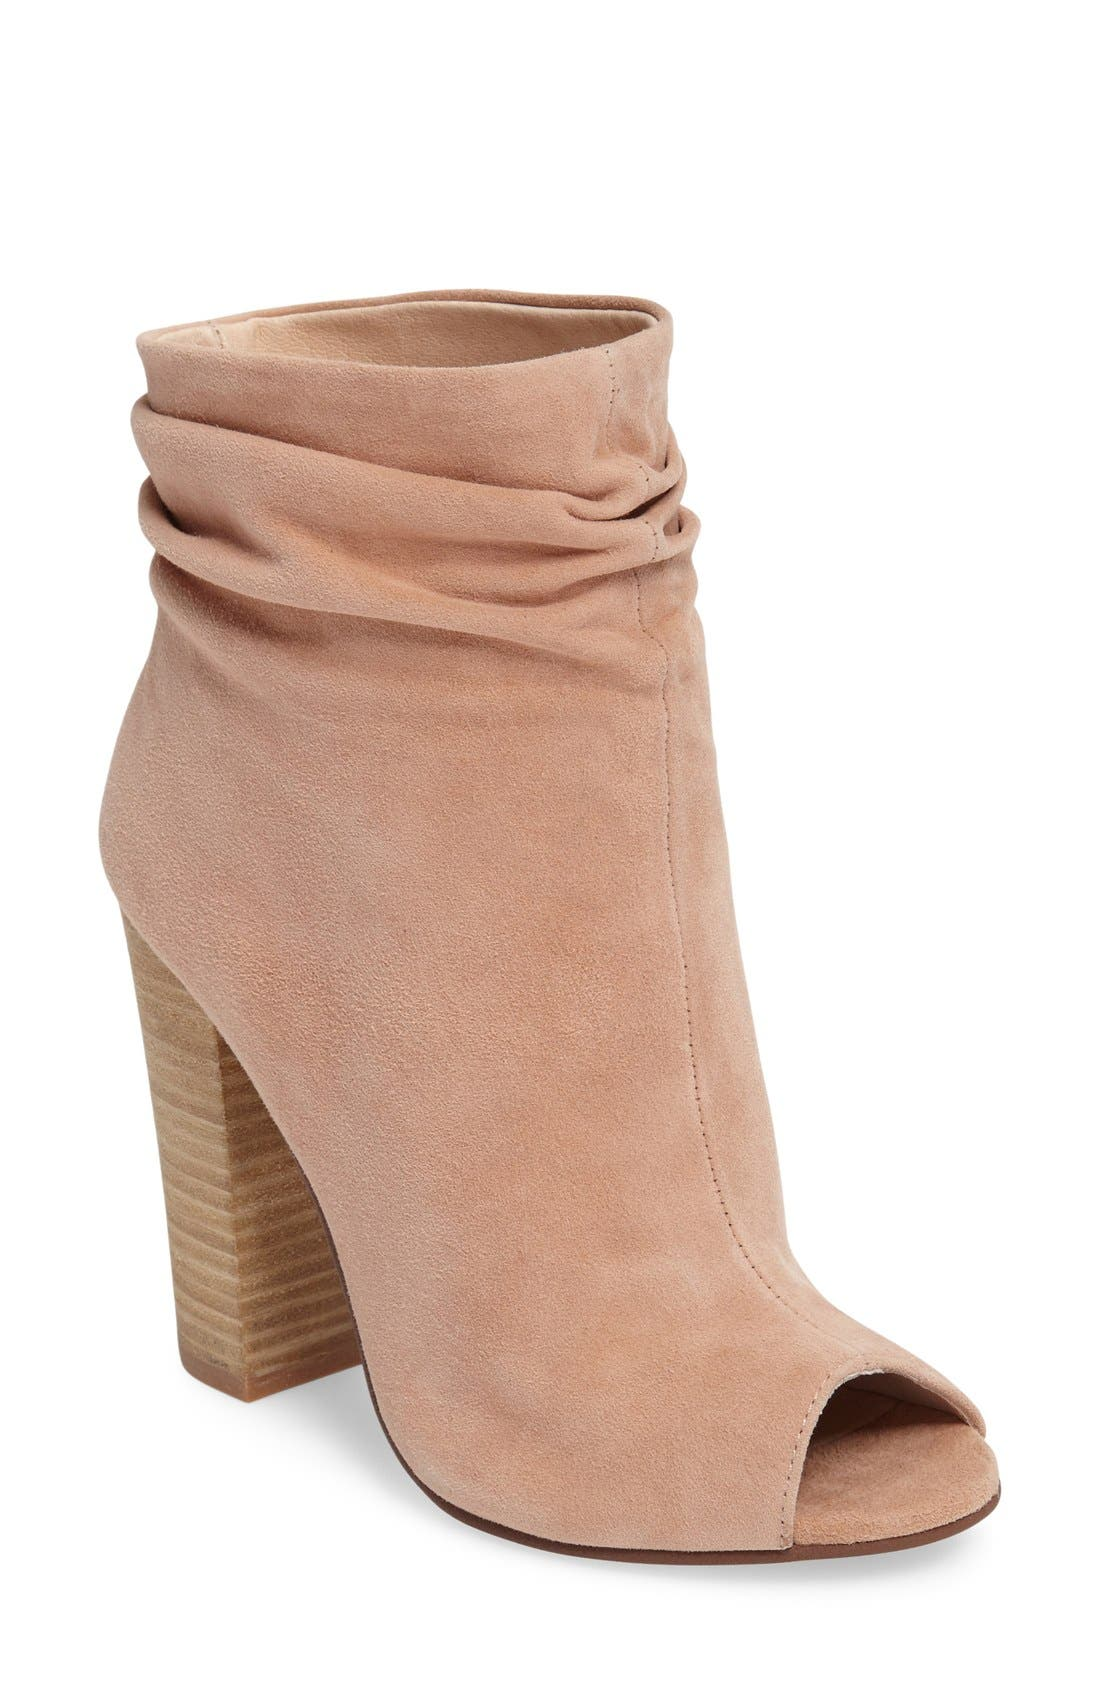 'Laurel' Peep Toe Bootie,                             Main thumbnail 7, color,